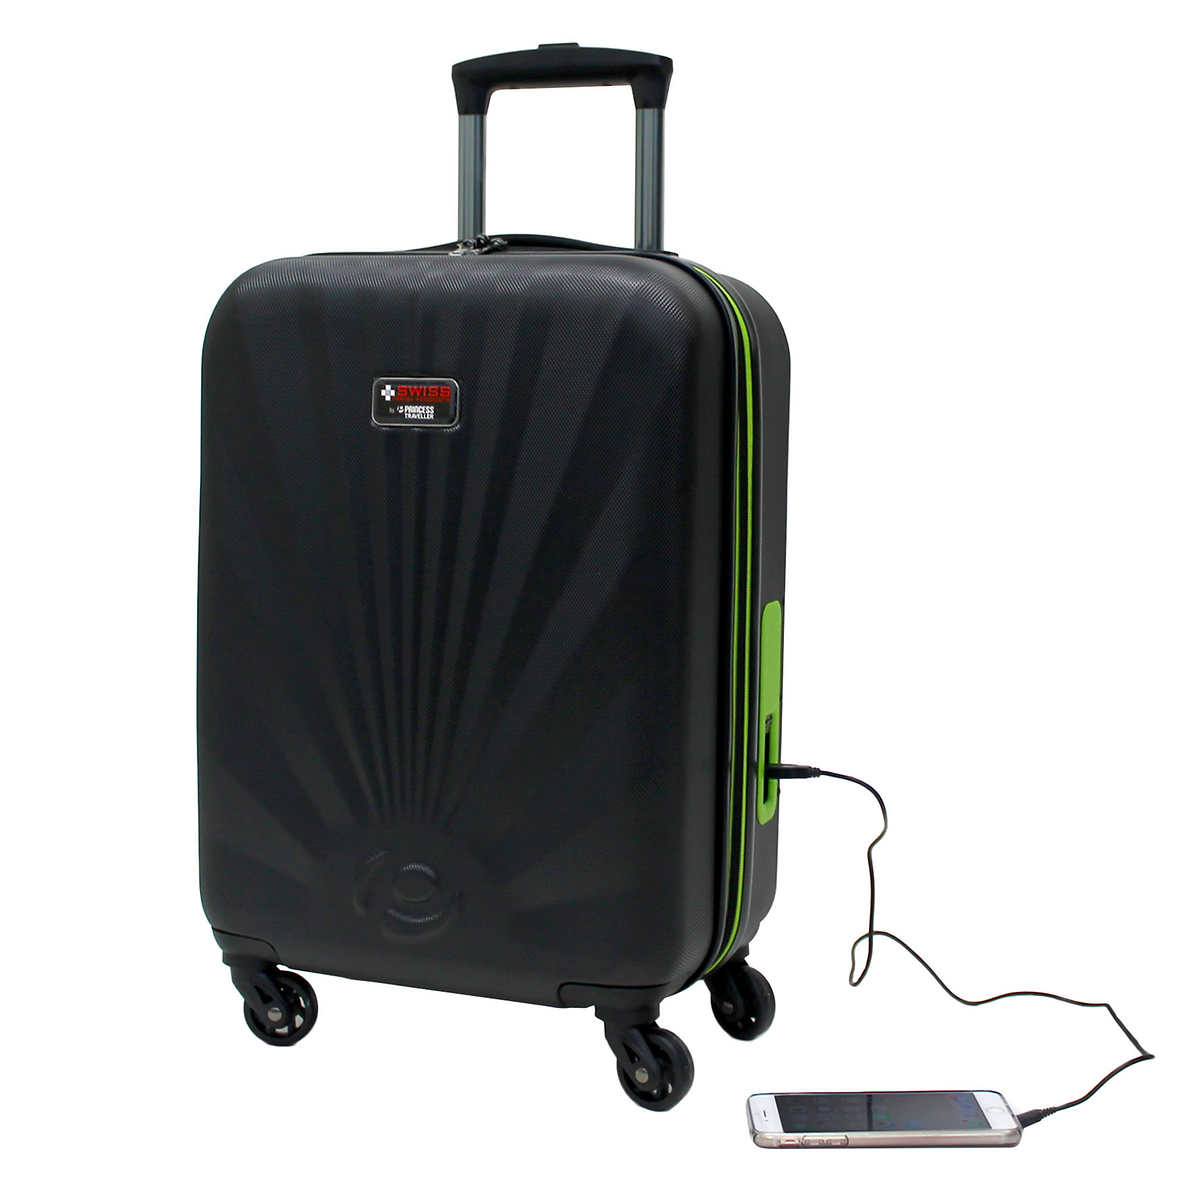 Carry on luggage with portable battery